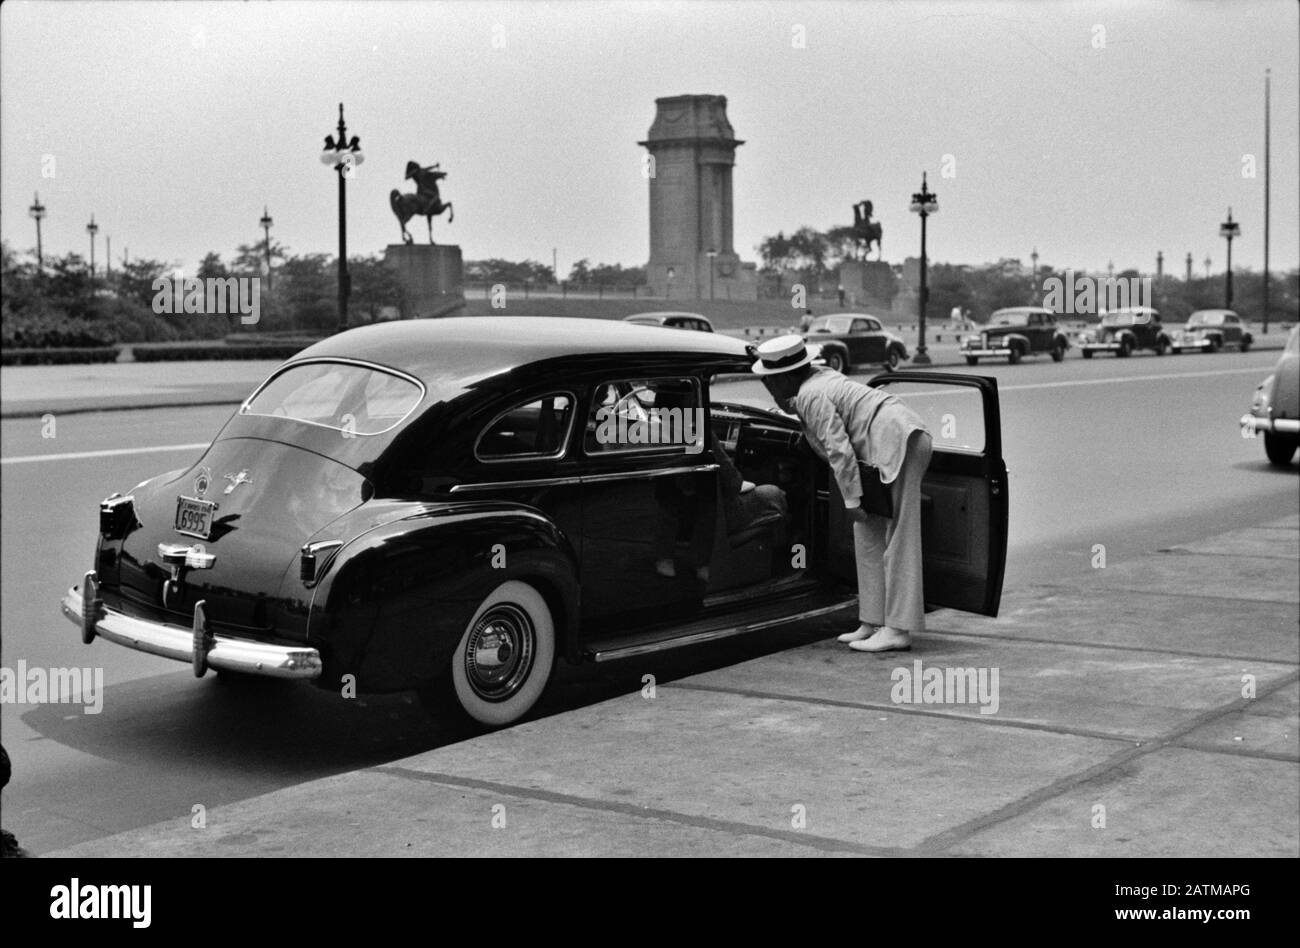 American Car 1940s High Resolution Stock Photography and Images ...